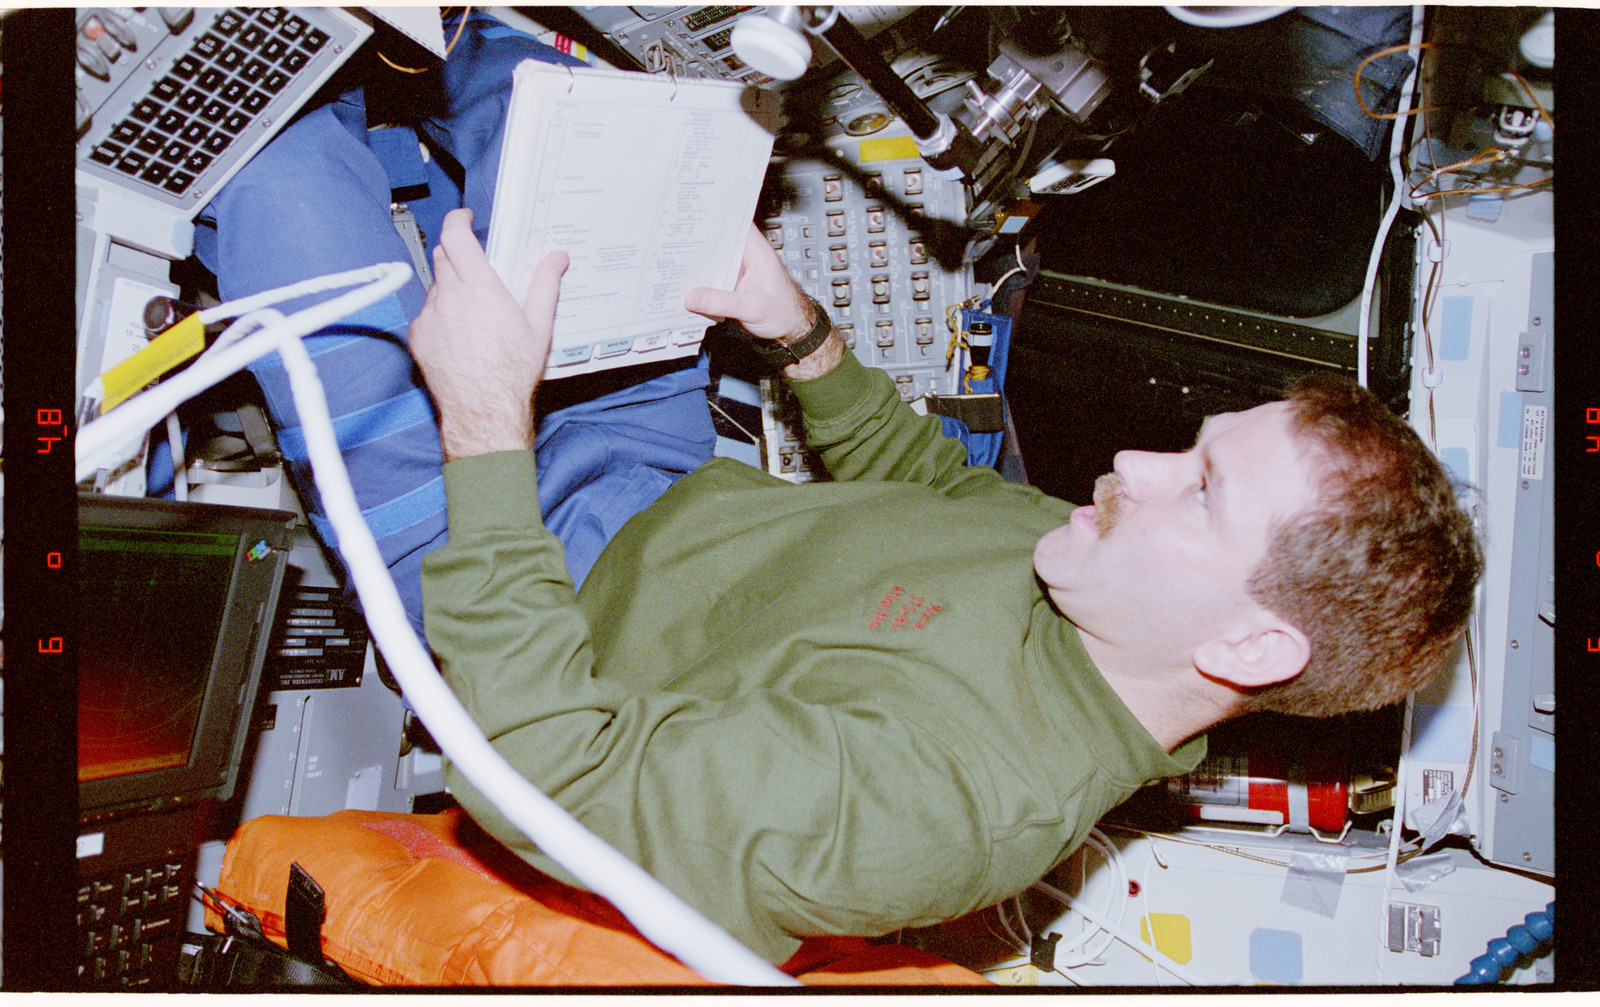 STS081-311-027 - STS-081 - STS-81 crew activities during undocking with Mir space station